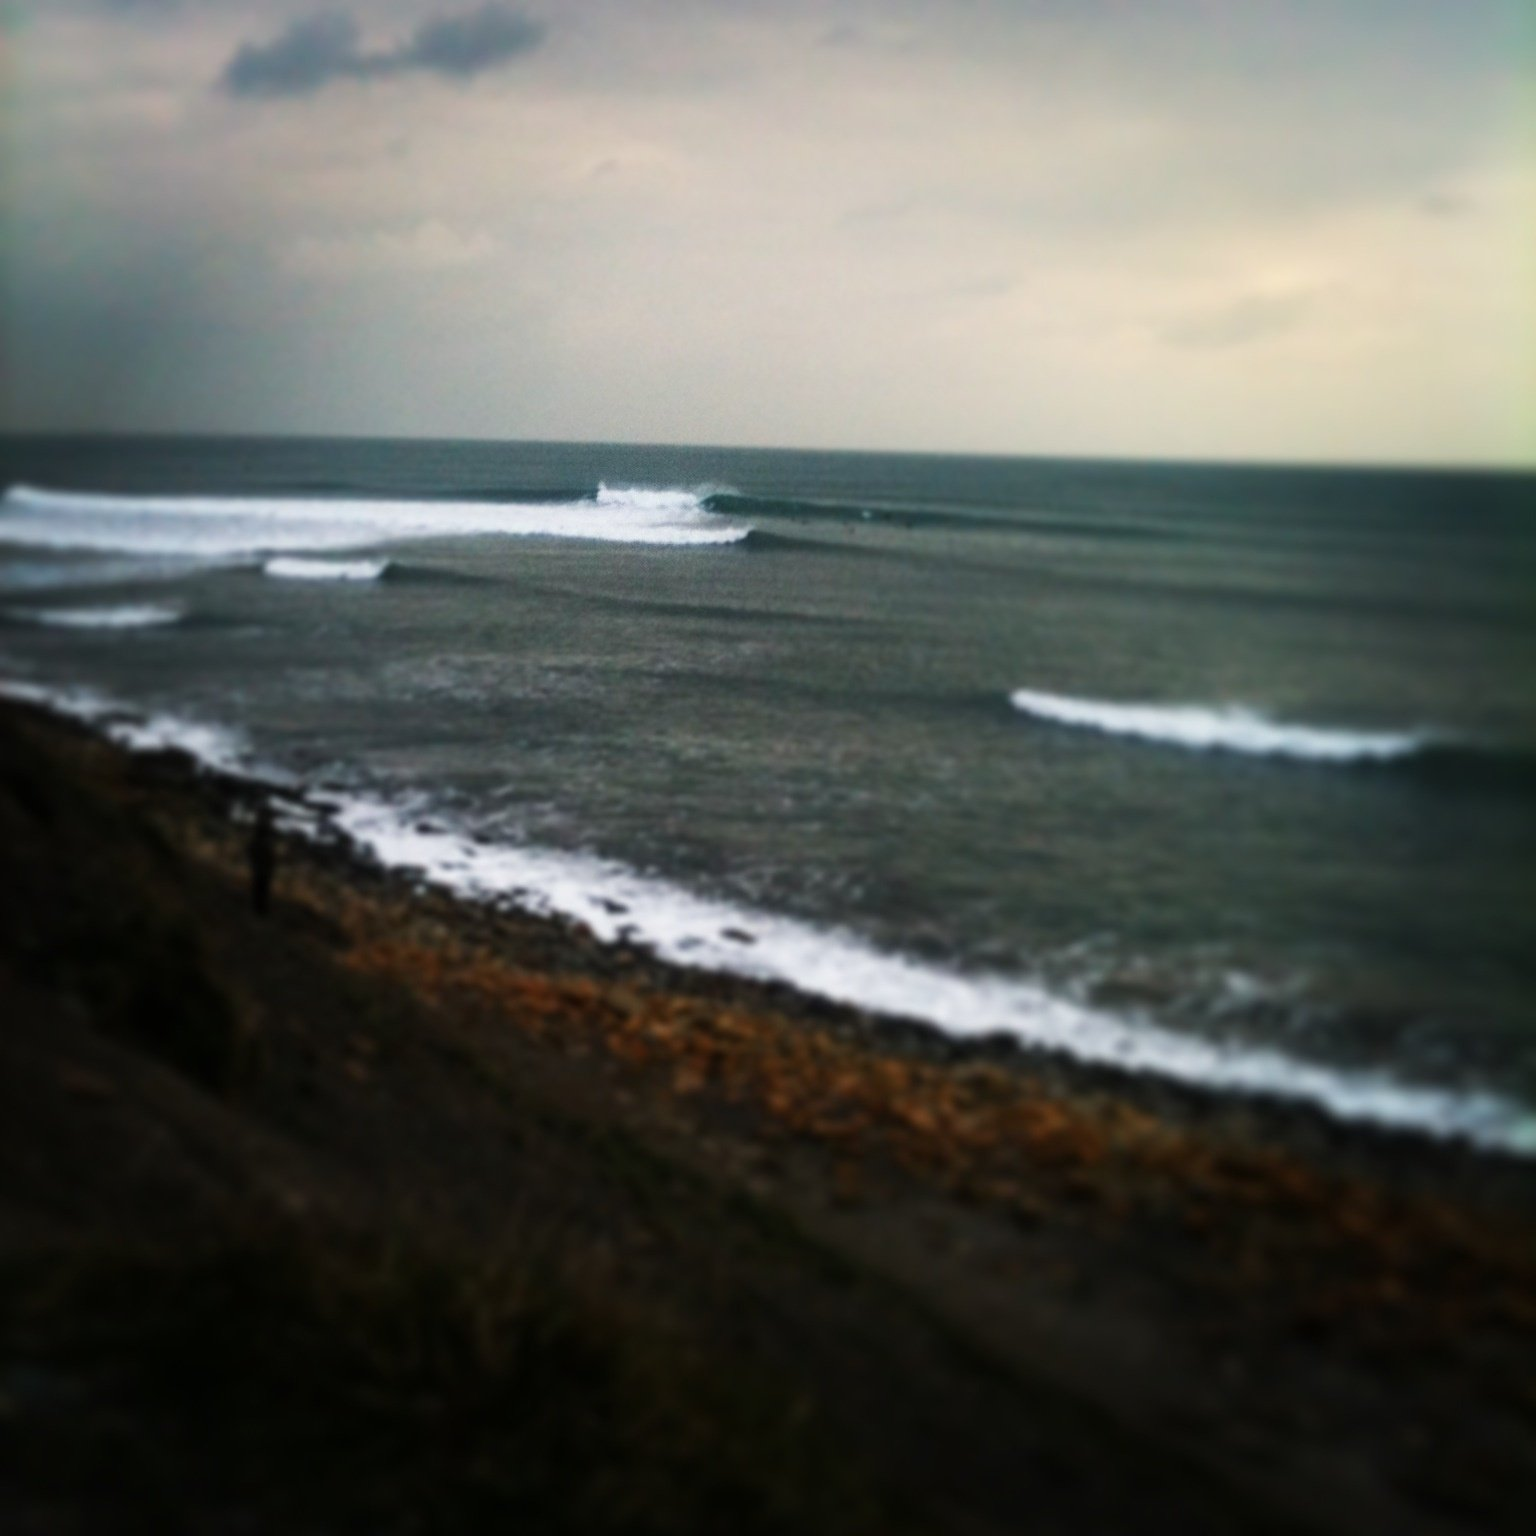 maxmitchell's photo of Kimmeridge